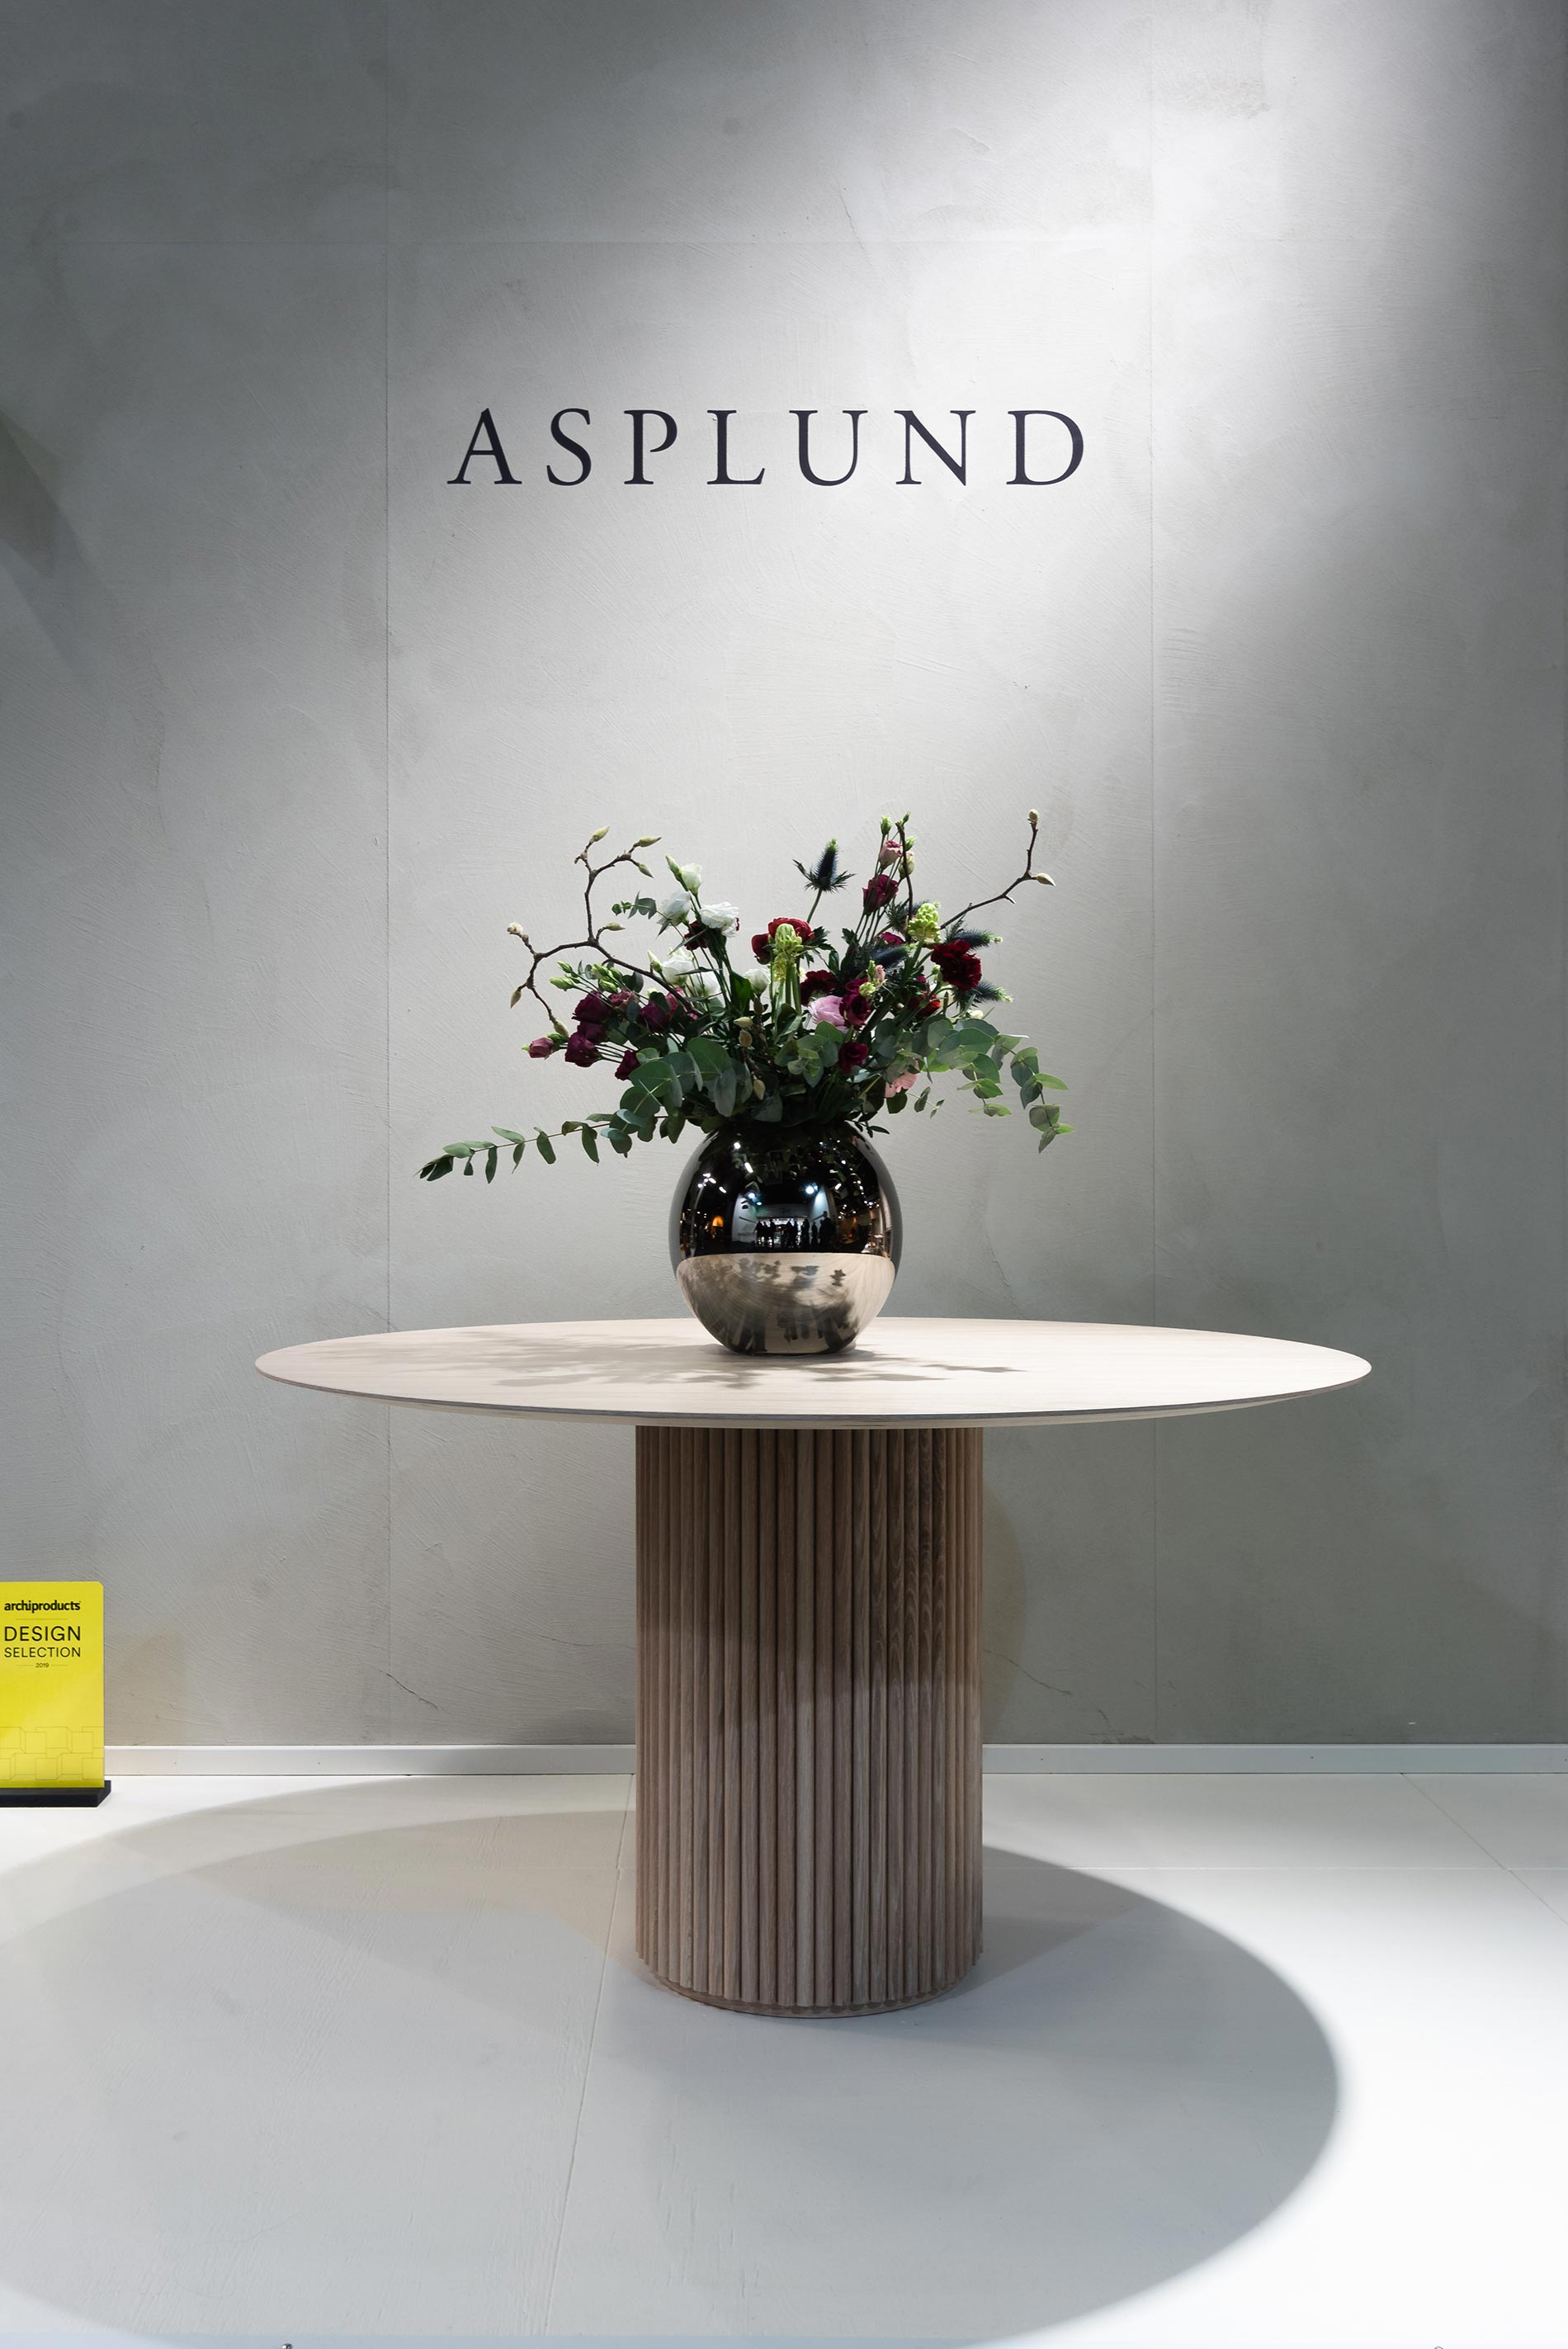 wood trend 2020 imm cologne 2019 asplund